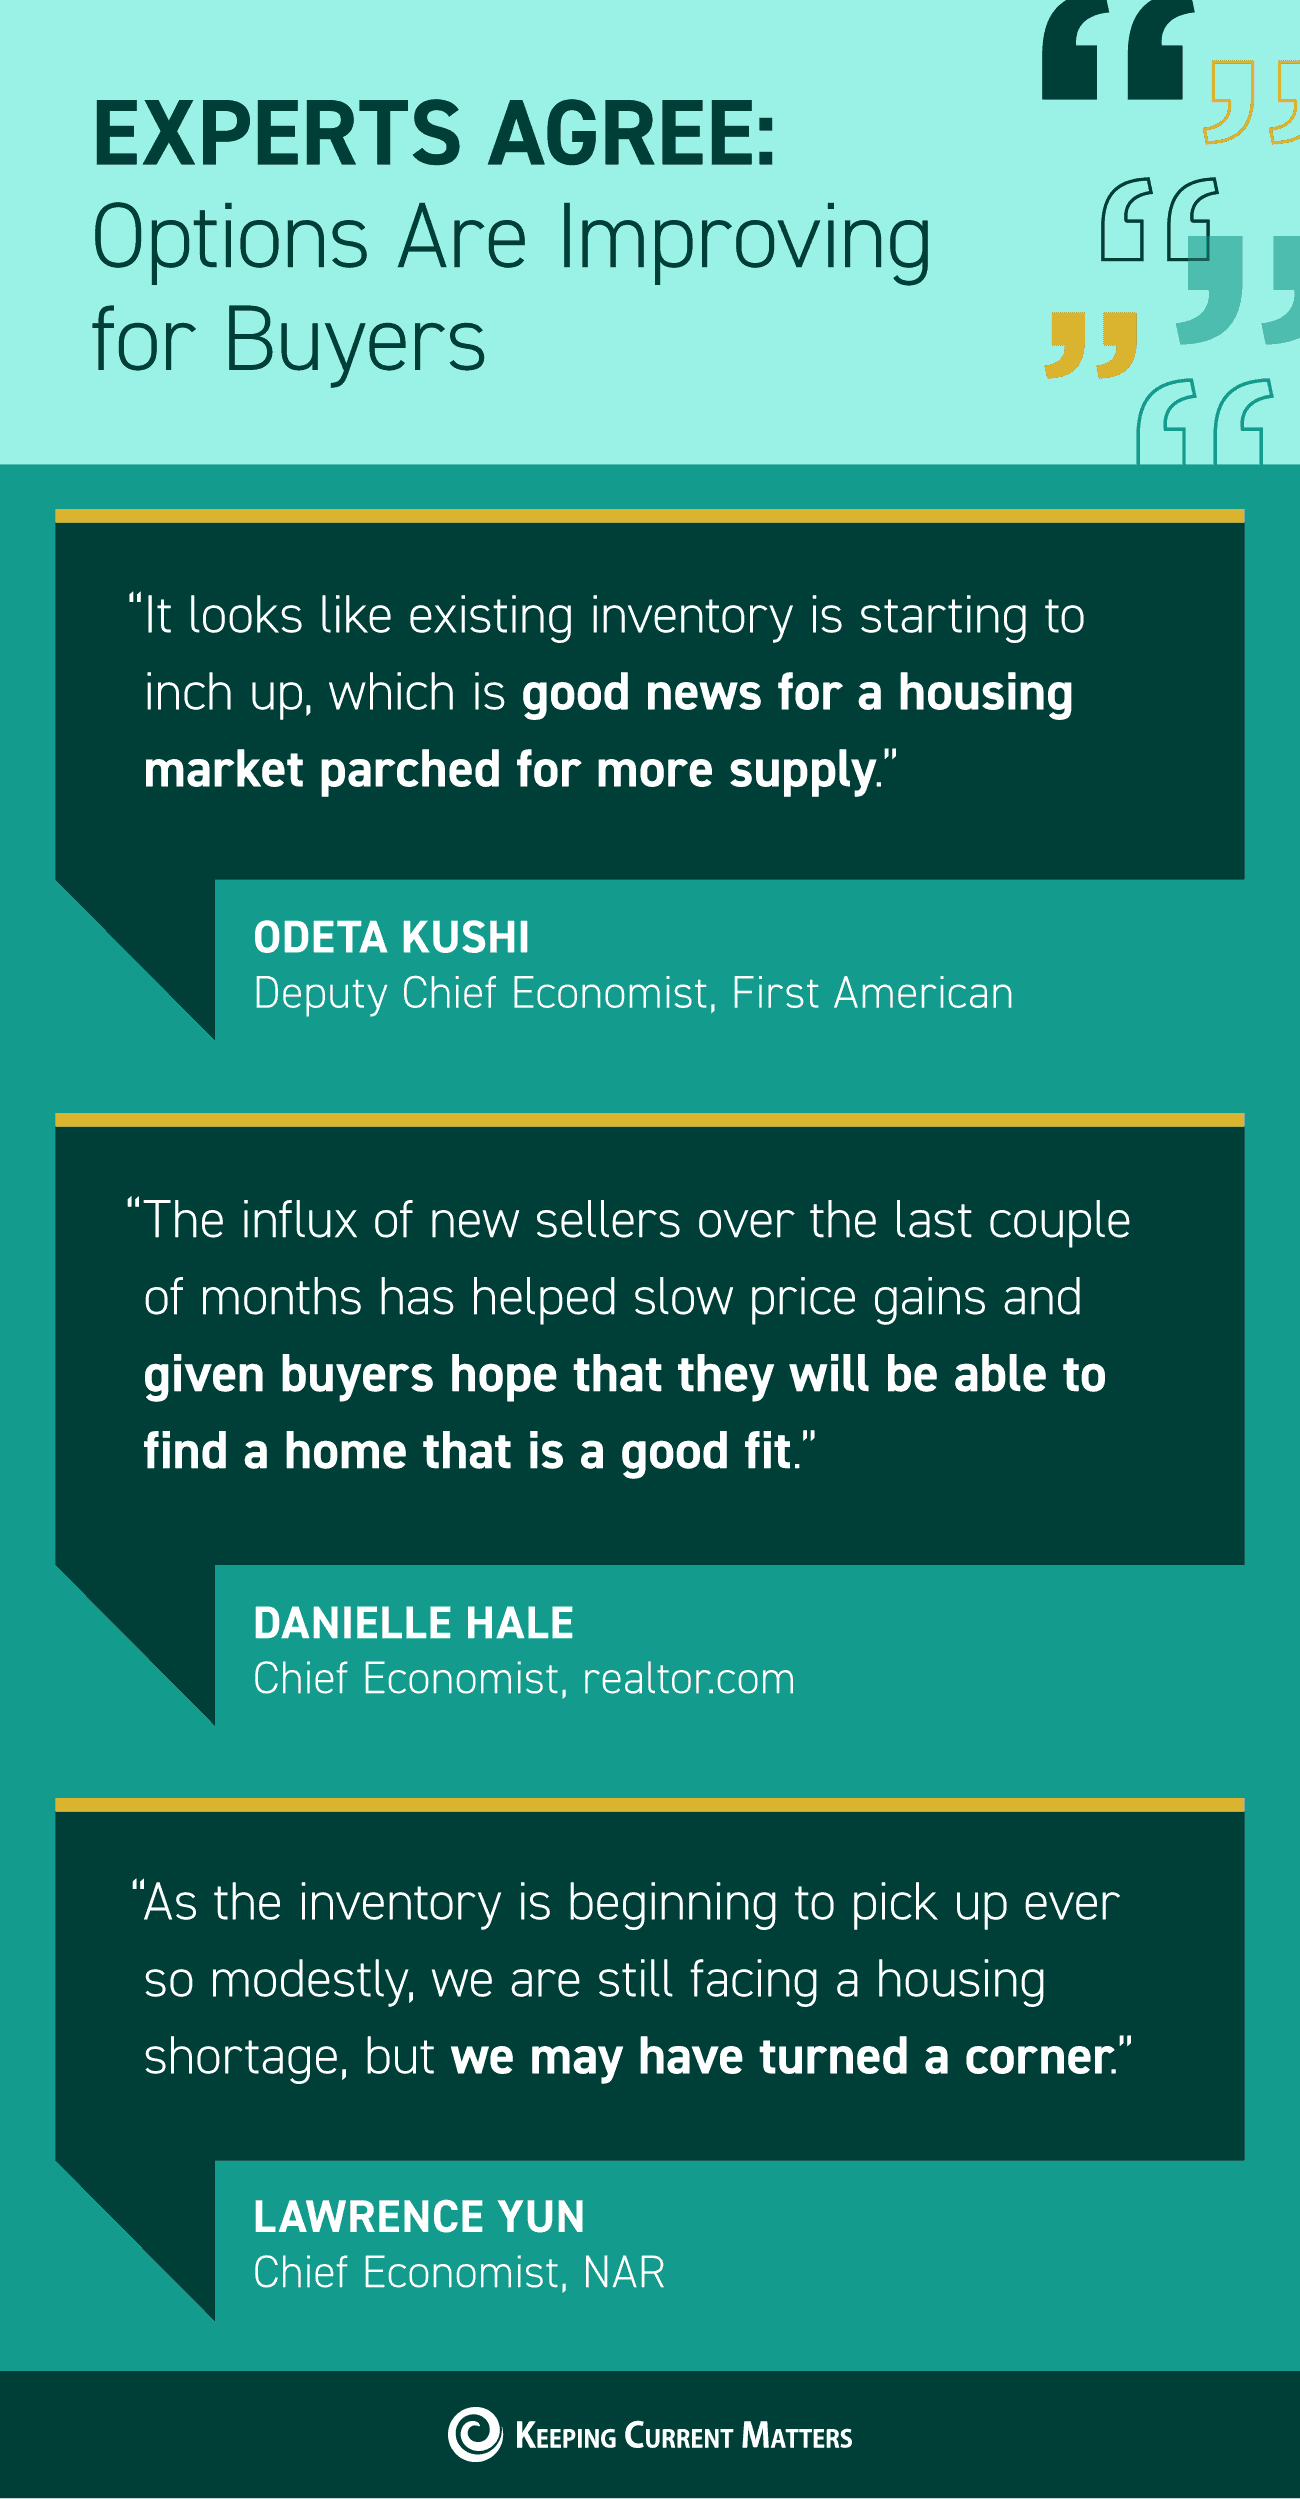 Experts Agree: Options Are Improving for Buyers [INFOGRAPHIC]   Keeping Current Matters